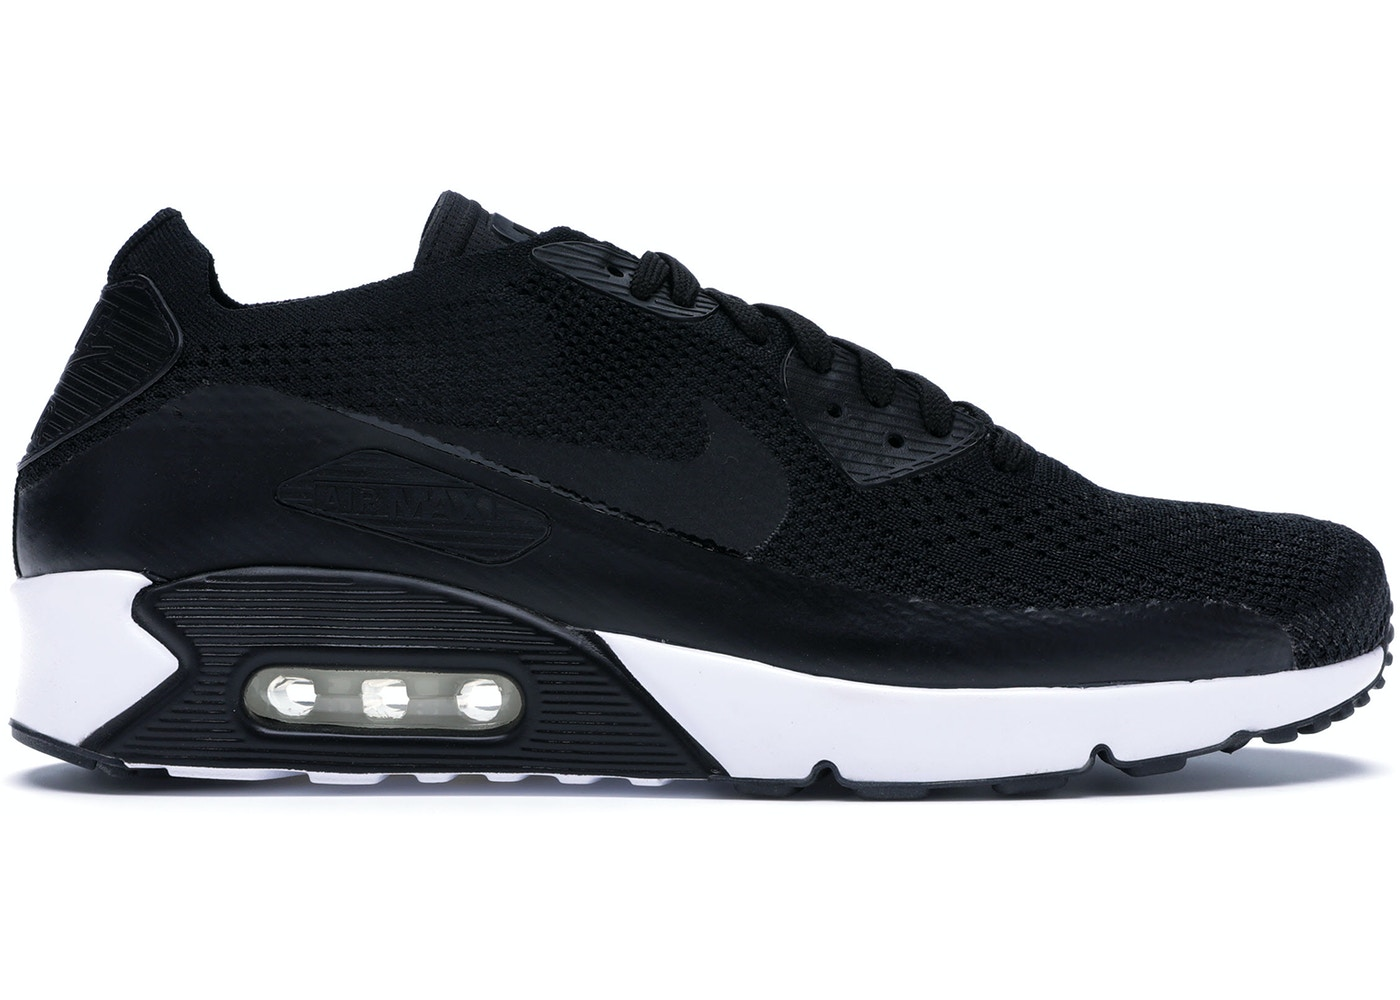 half off 218a5 5cbf4 Buy Nike Air Max 90 Shoes   Deadstock Sneakers